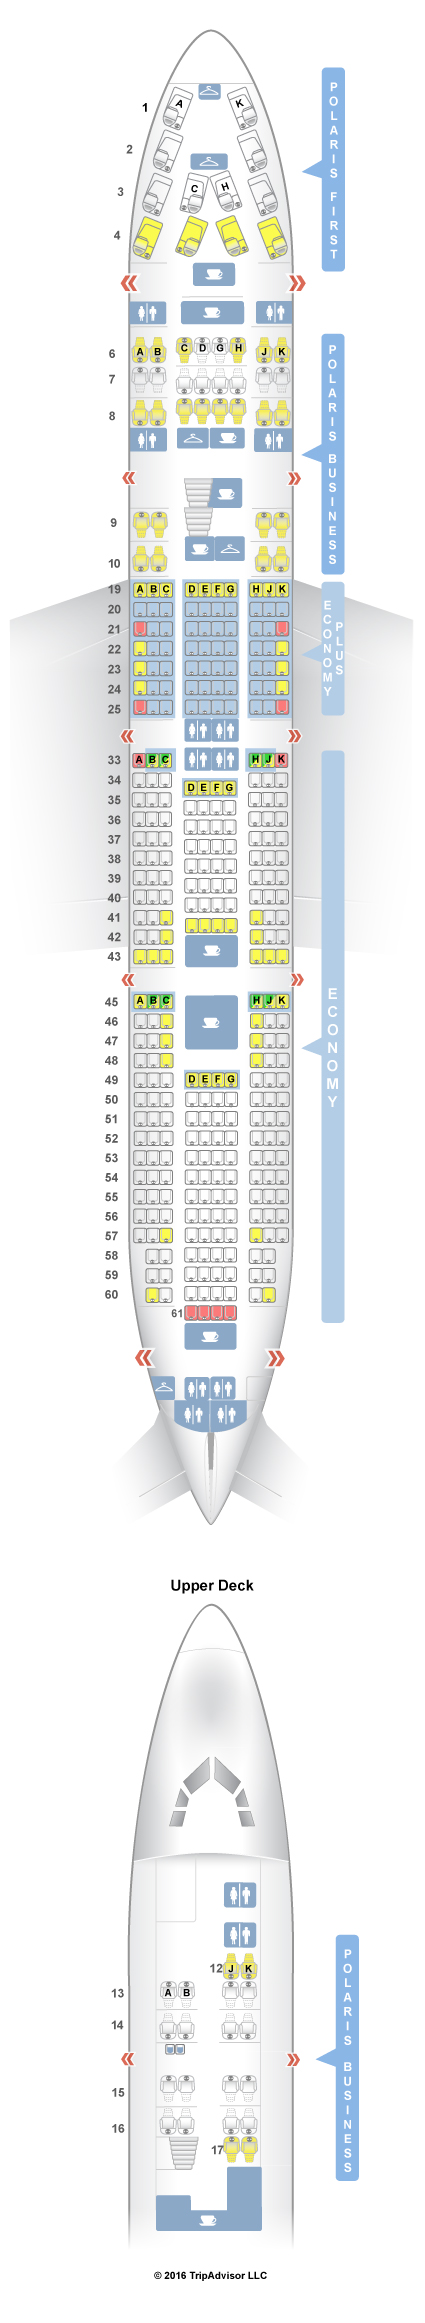 What is the seating plan on a Boeing 744 airplane?